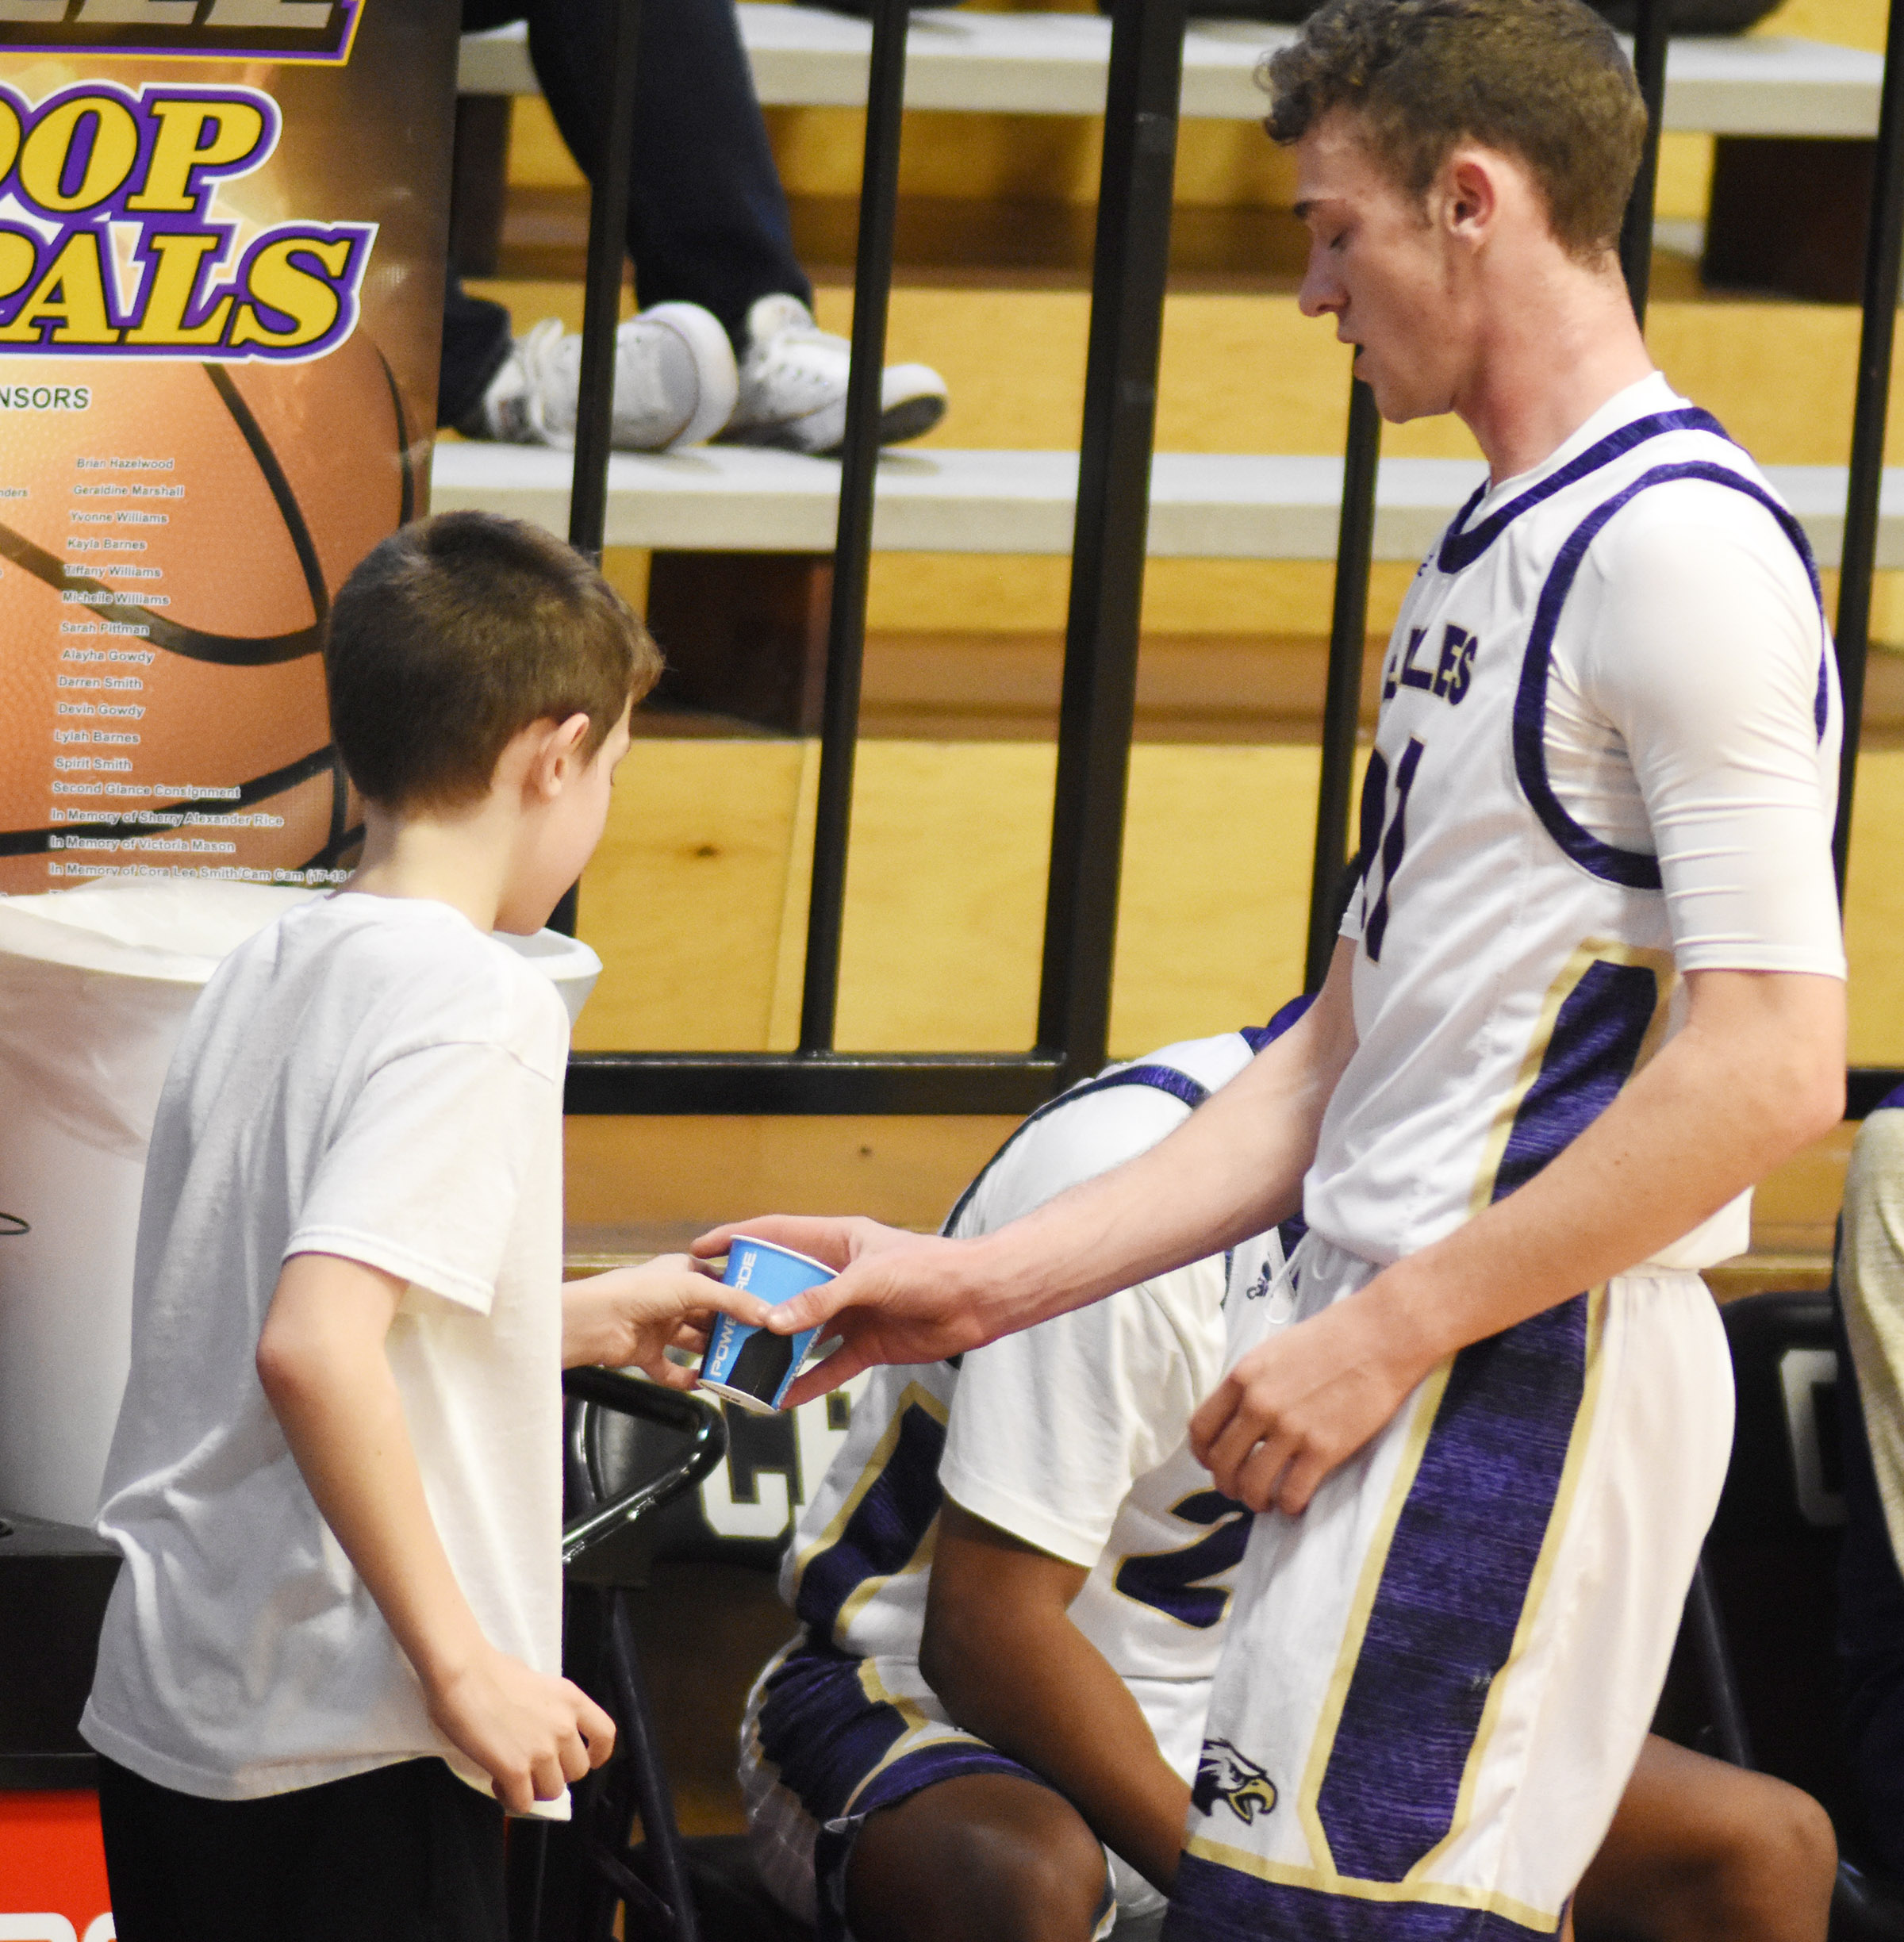 Campbellsville Elementary School third-grader Aidan Wilson gives his brother, CHS senior Connor Wilson, some water during a timeout.